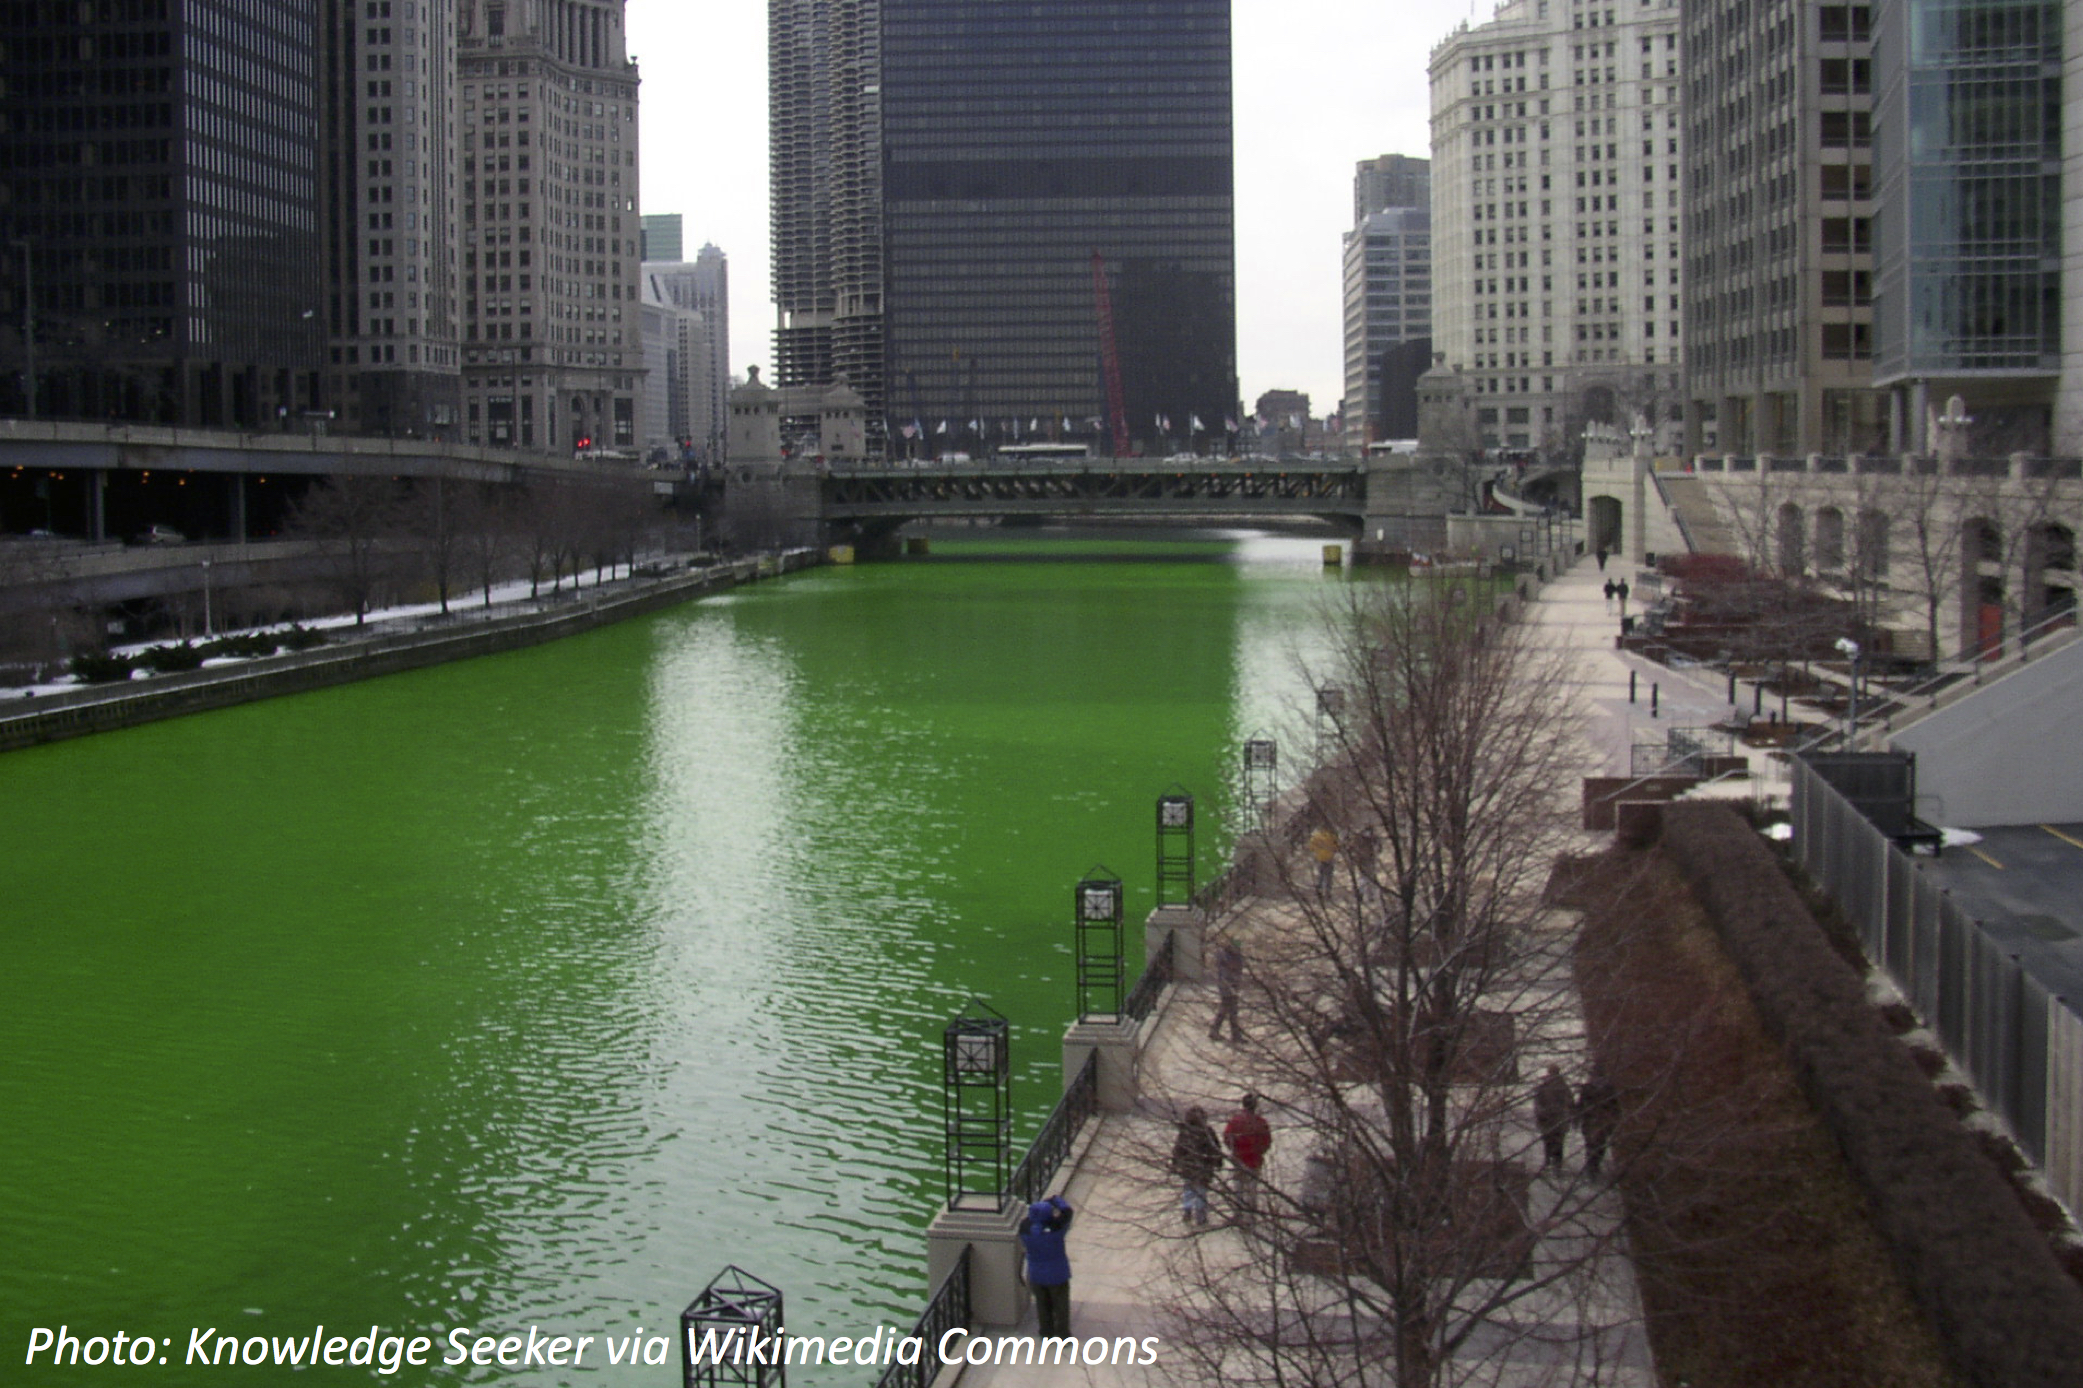 How to Make a River Green